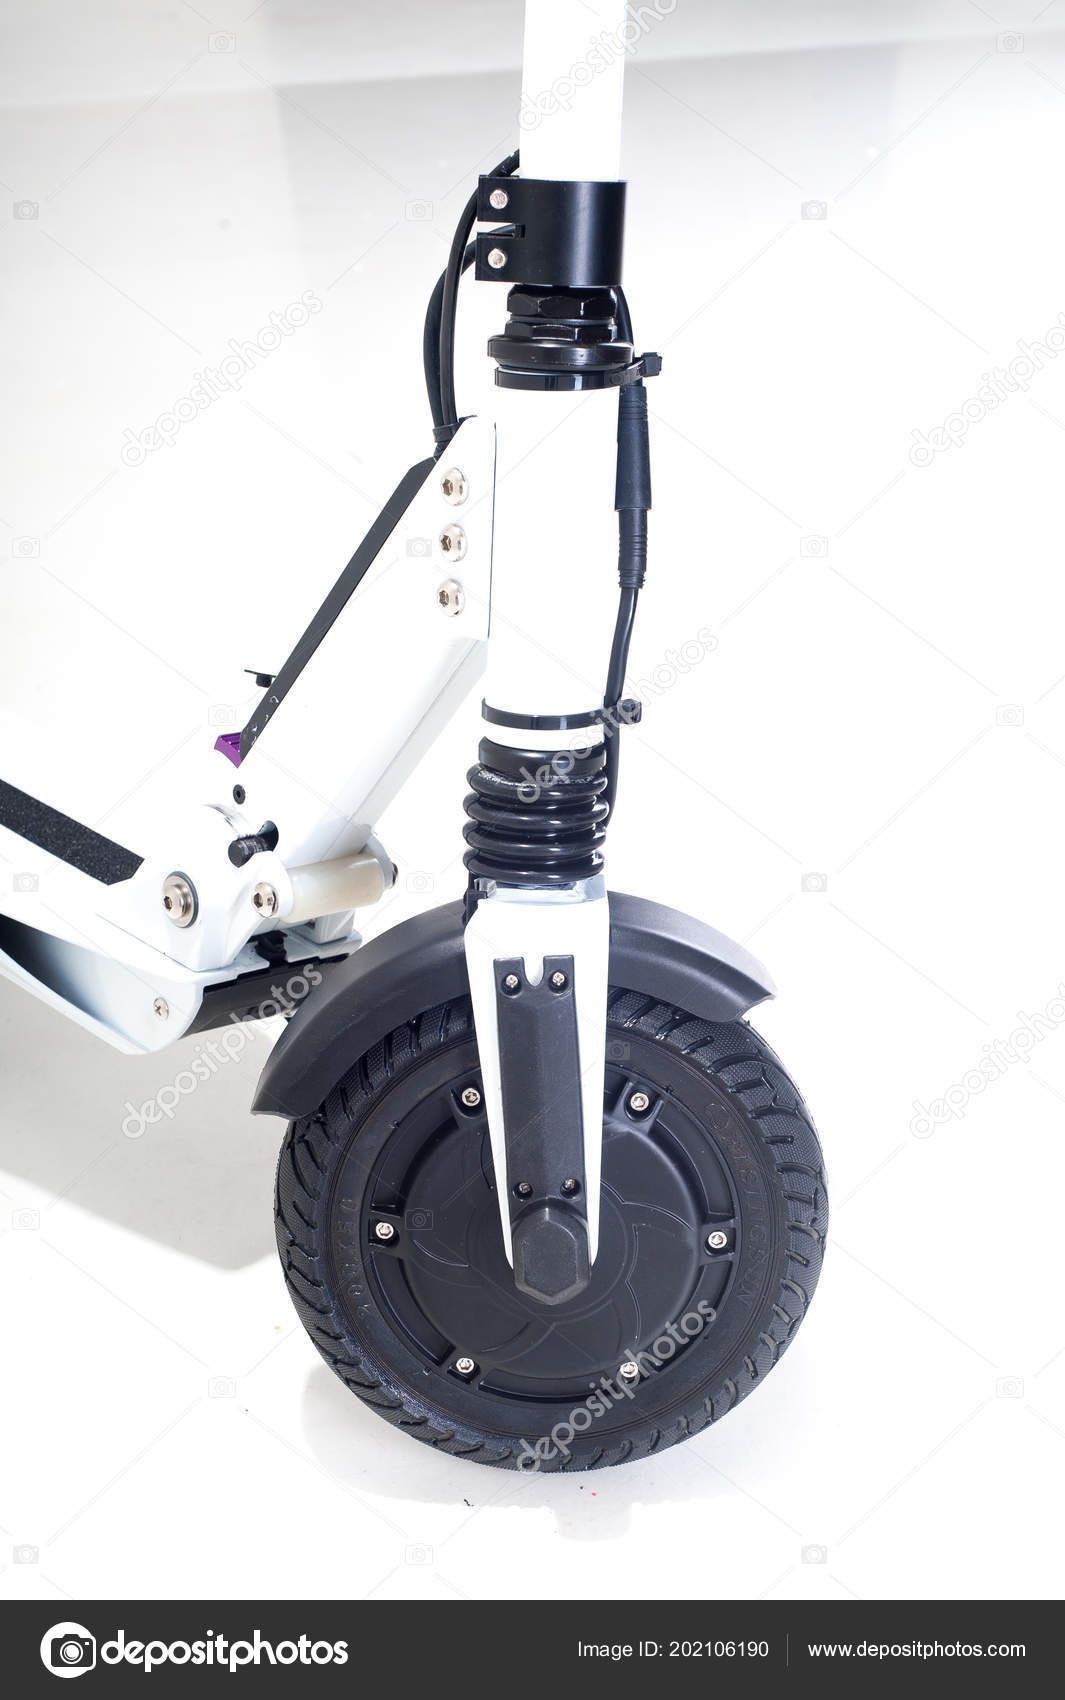 Electric Scooter Hoverboard Vehicle Stock Photo C Sergiomishin 202106190